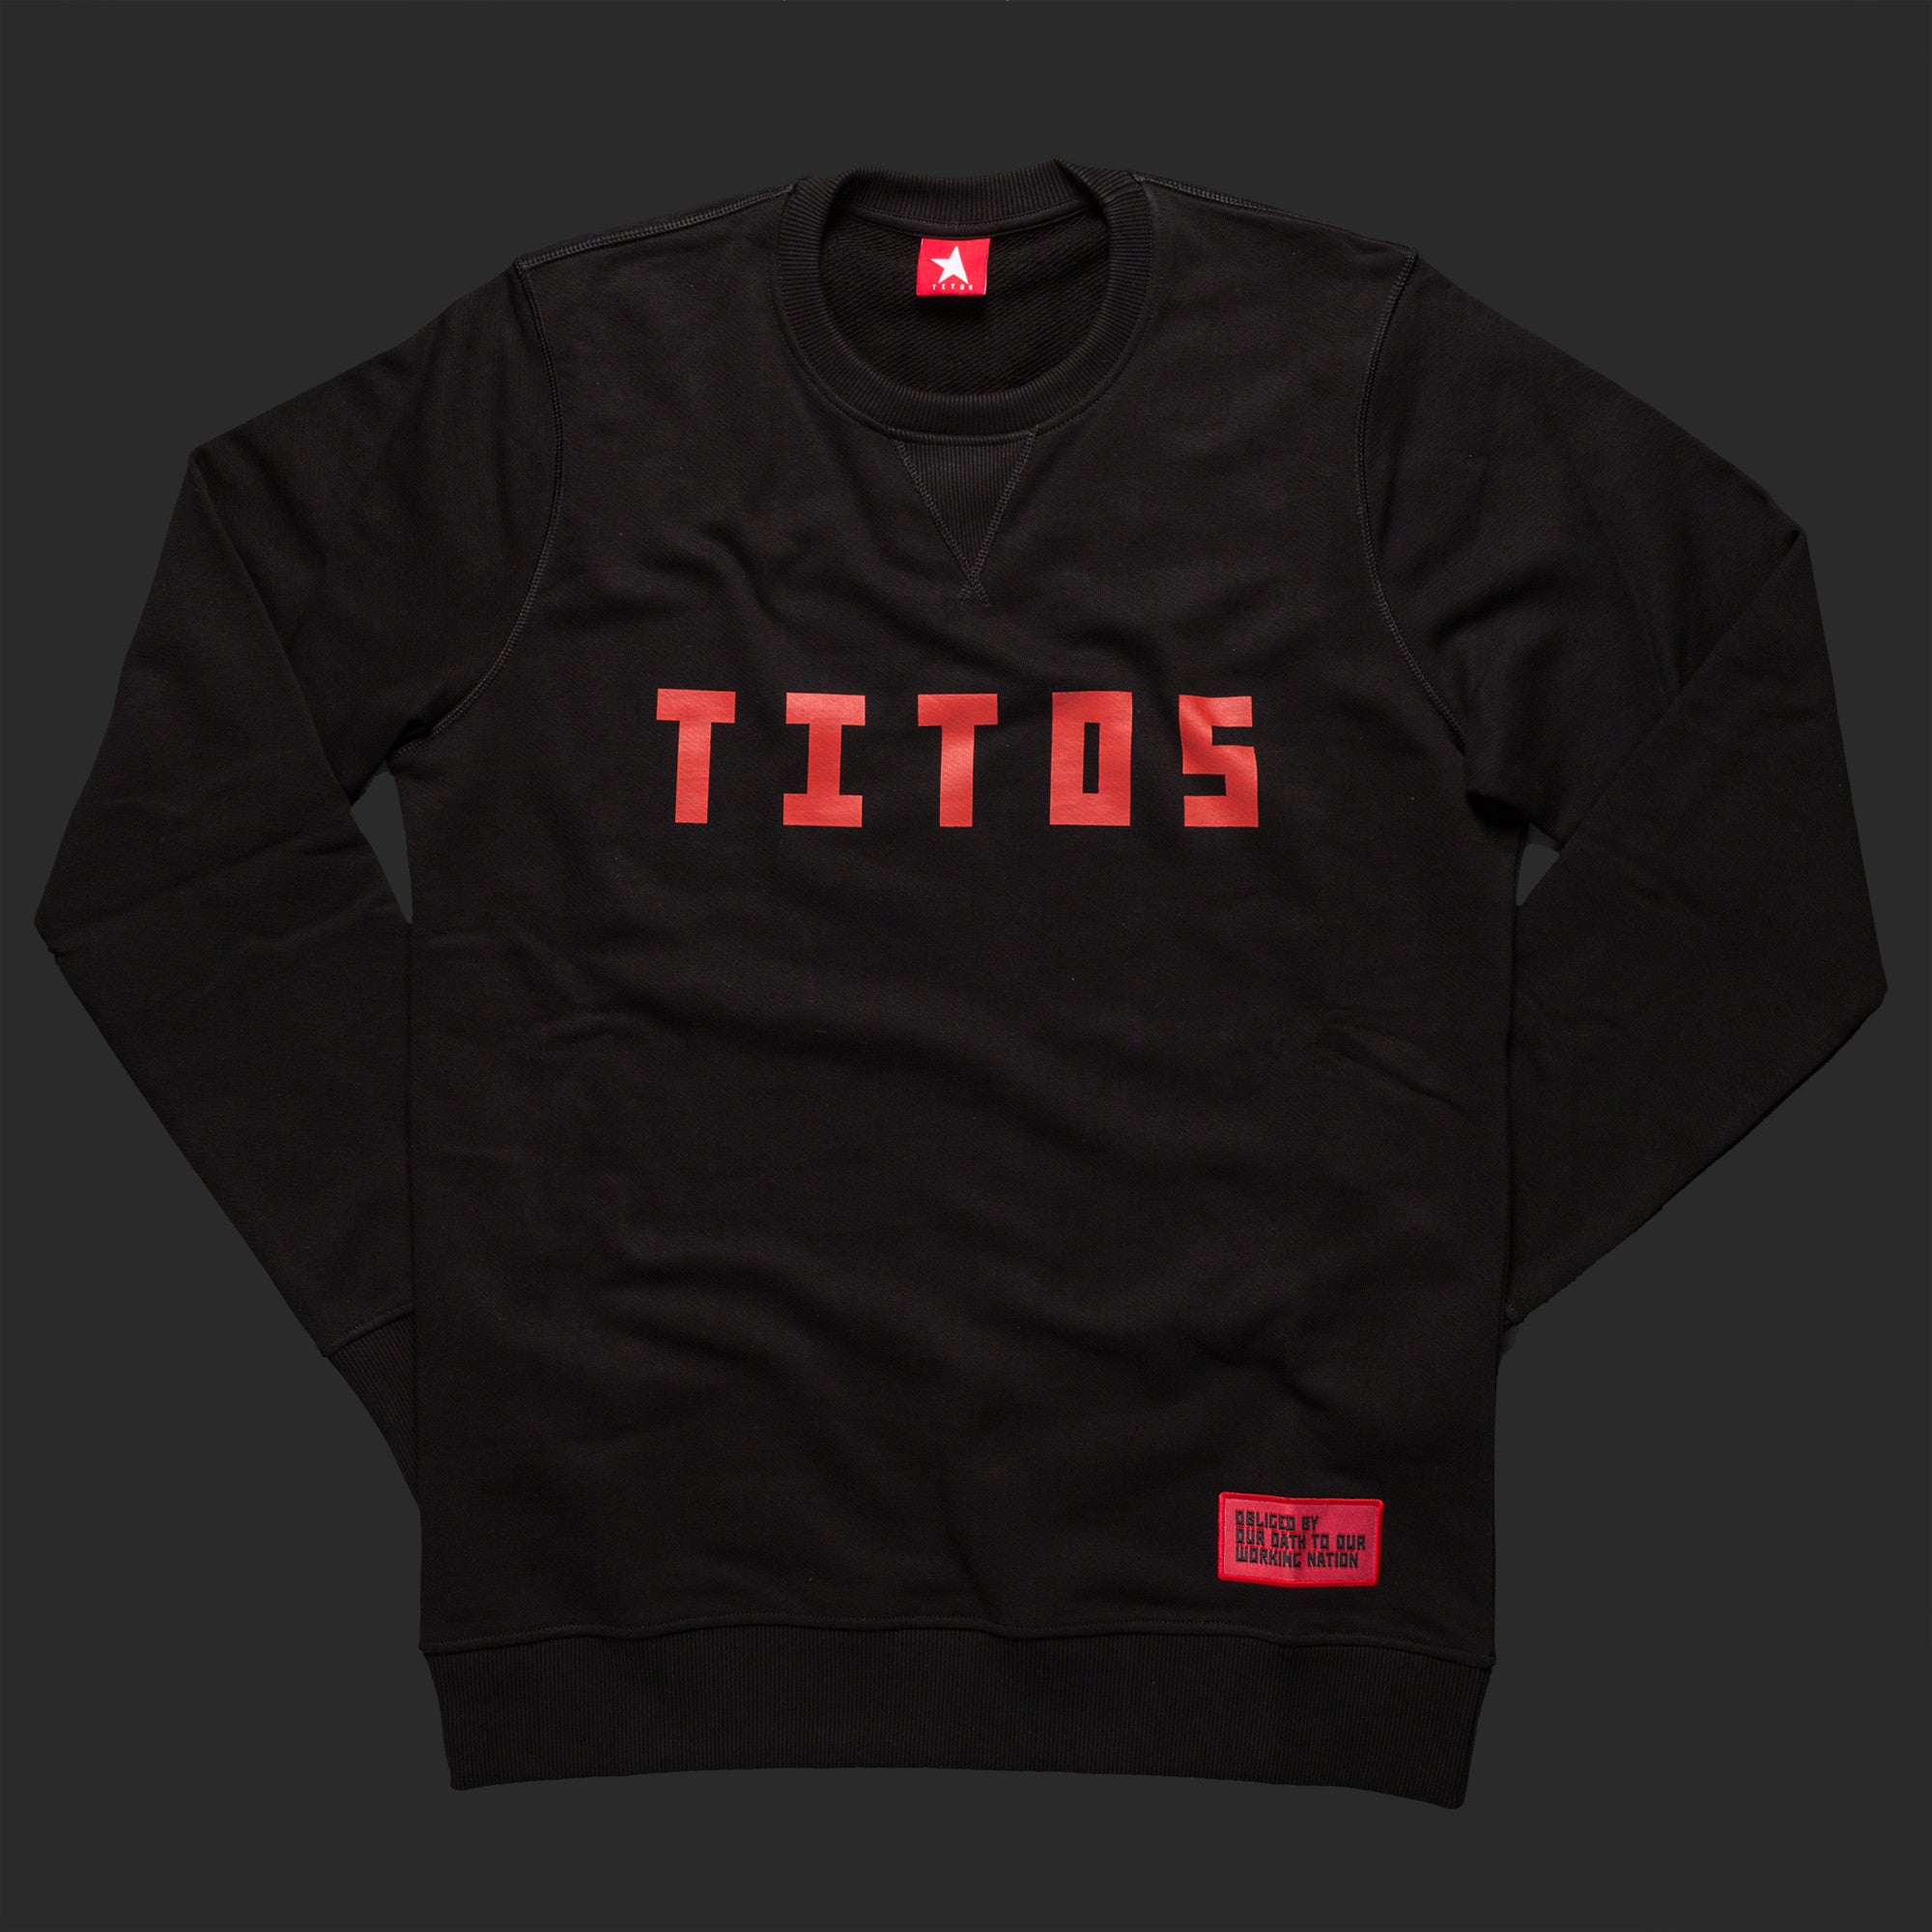 12th TITOS crewneck black/red letter chest logo